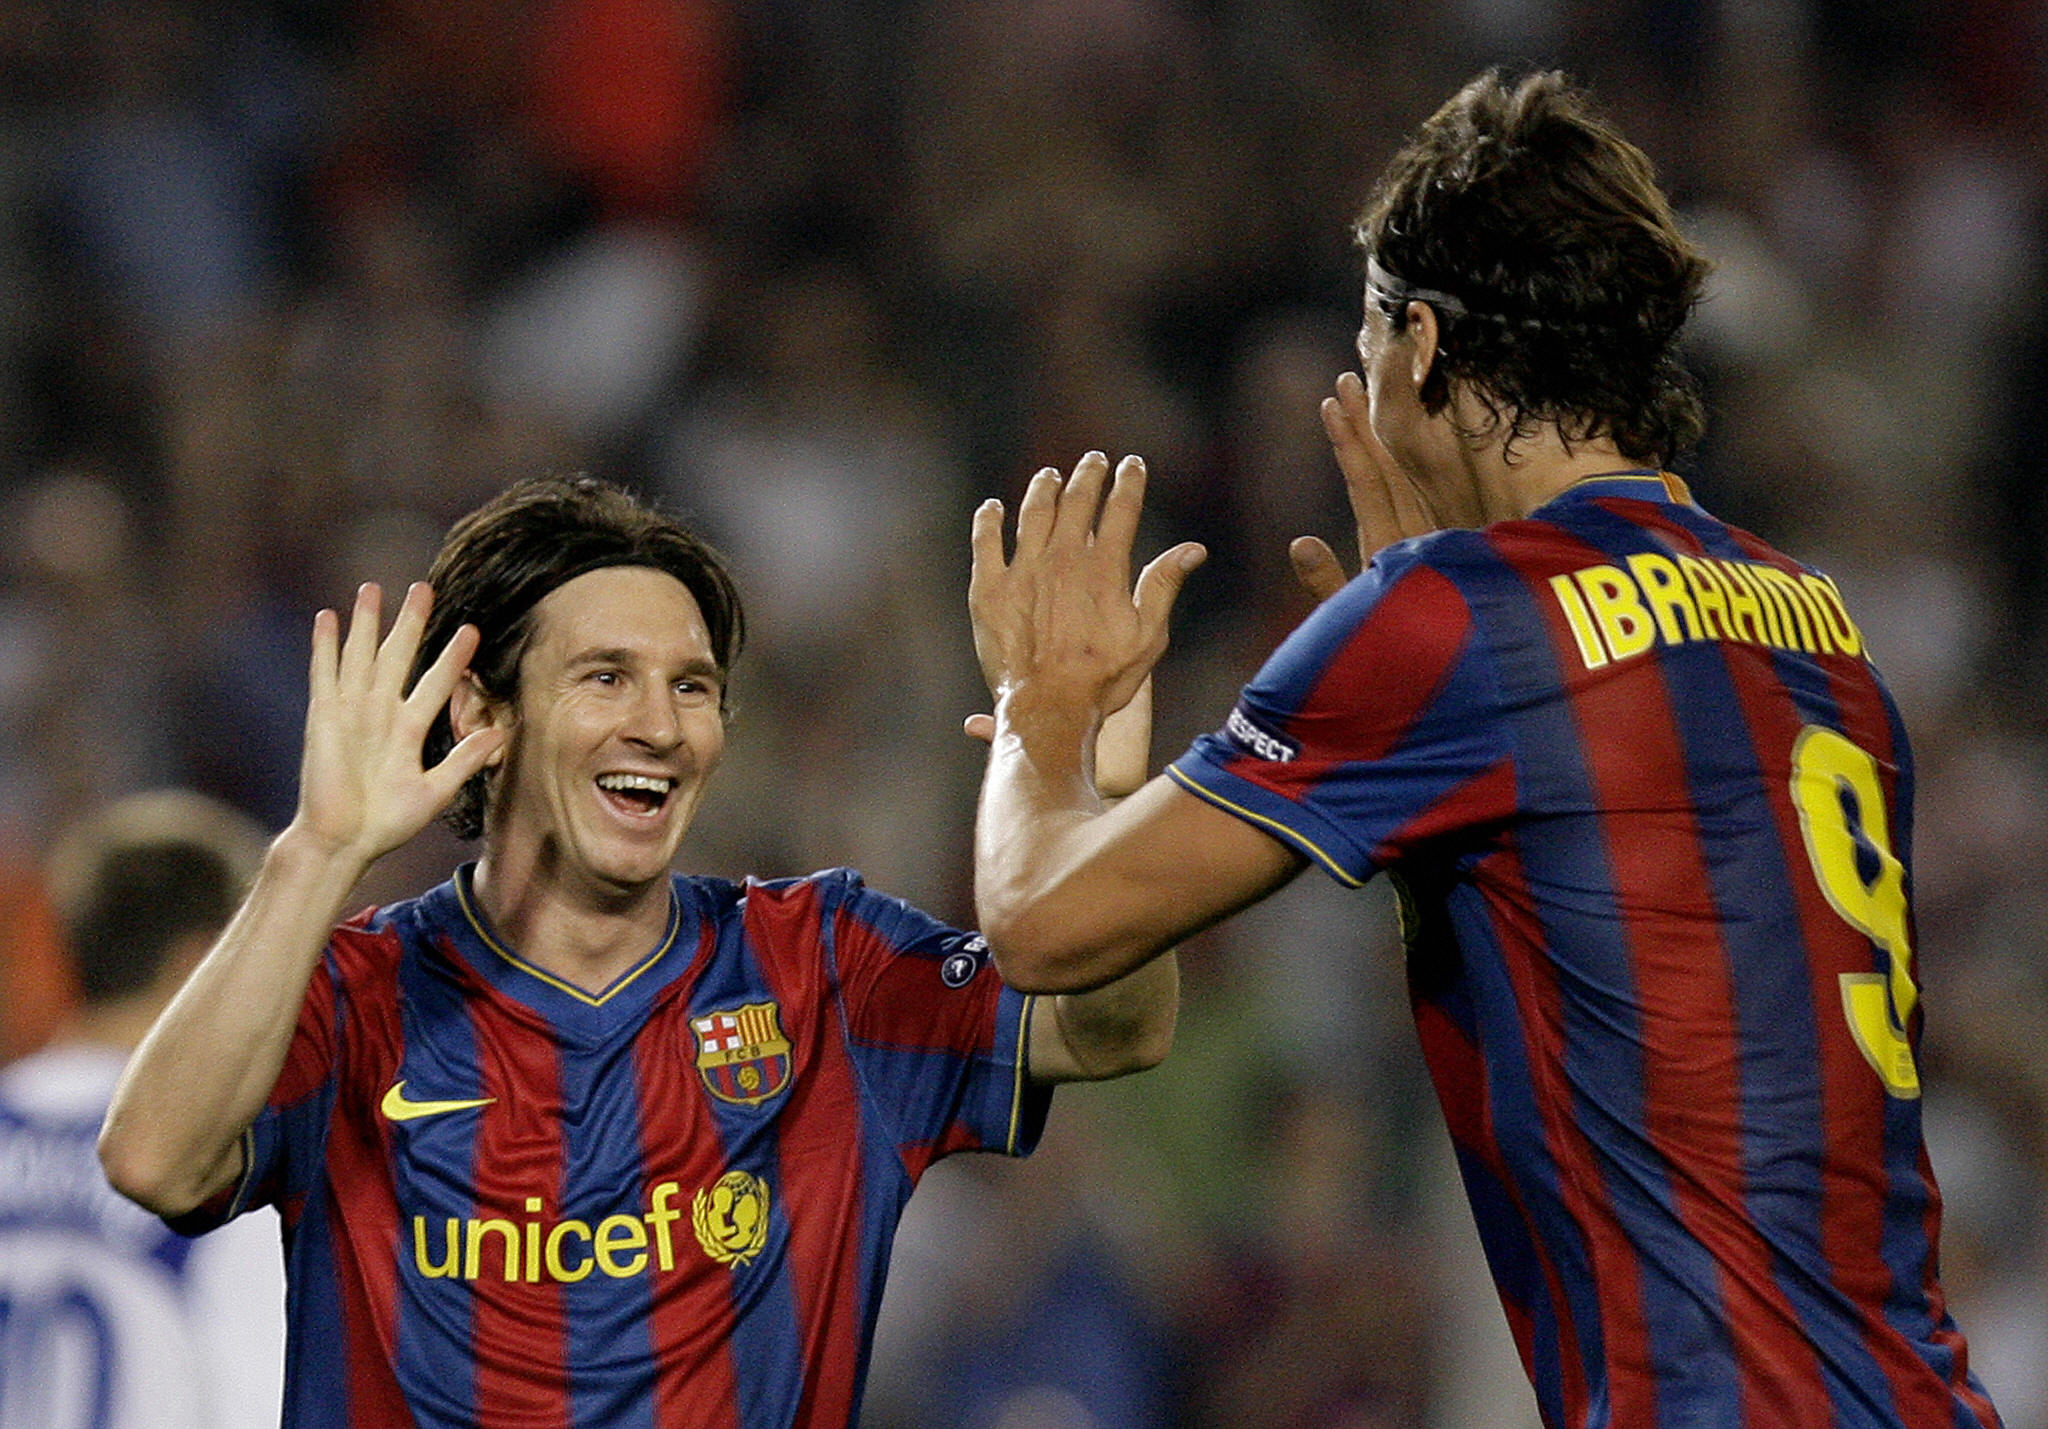 Barcelona's Argentinian forward Lionel Messi (L) is congratuled by his teammate Swedish forward Zlatan Ibrahimovic (R) after scoring during the UEFA Champions League football match between Barcelona and Dynamo Kiev at the Camp Nou stadium in Barcelona on September 29, 2009. AFP PHOTO/JOSEP LAGO (Photo credit should read JOSEP LAGO/AFP/Getty Images)